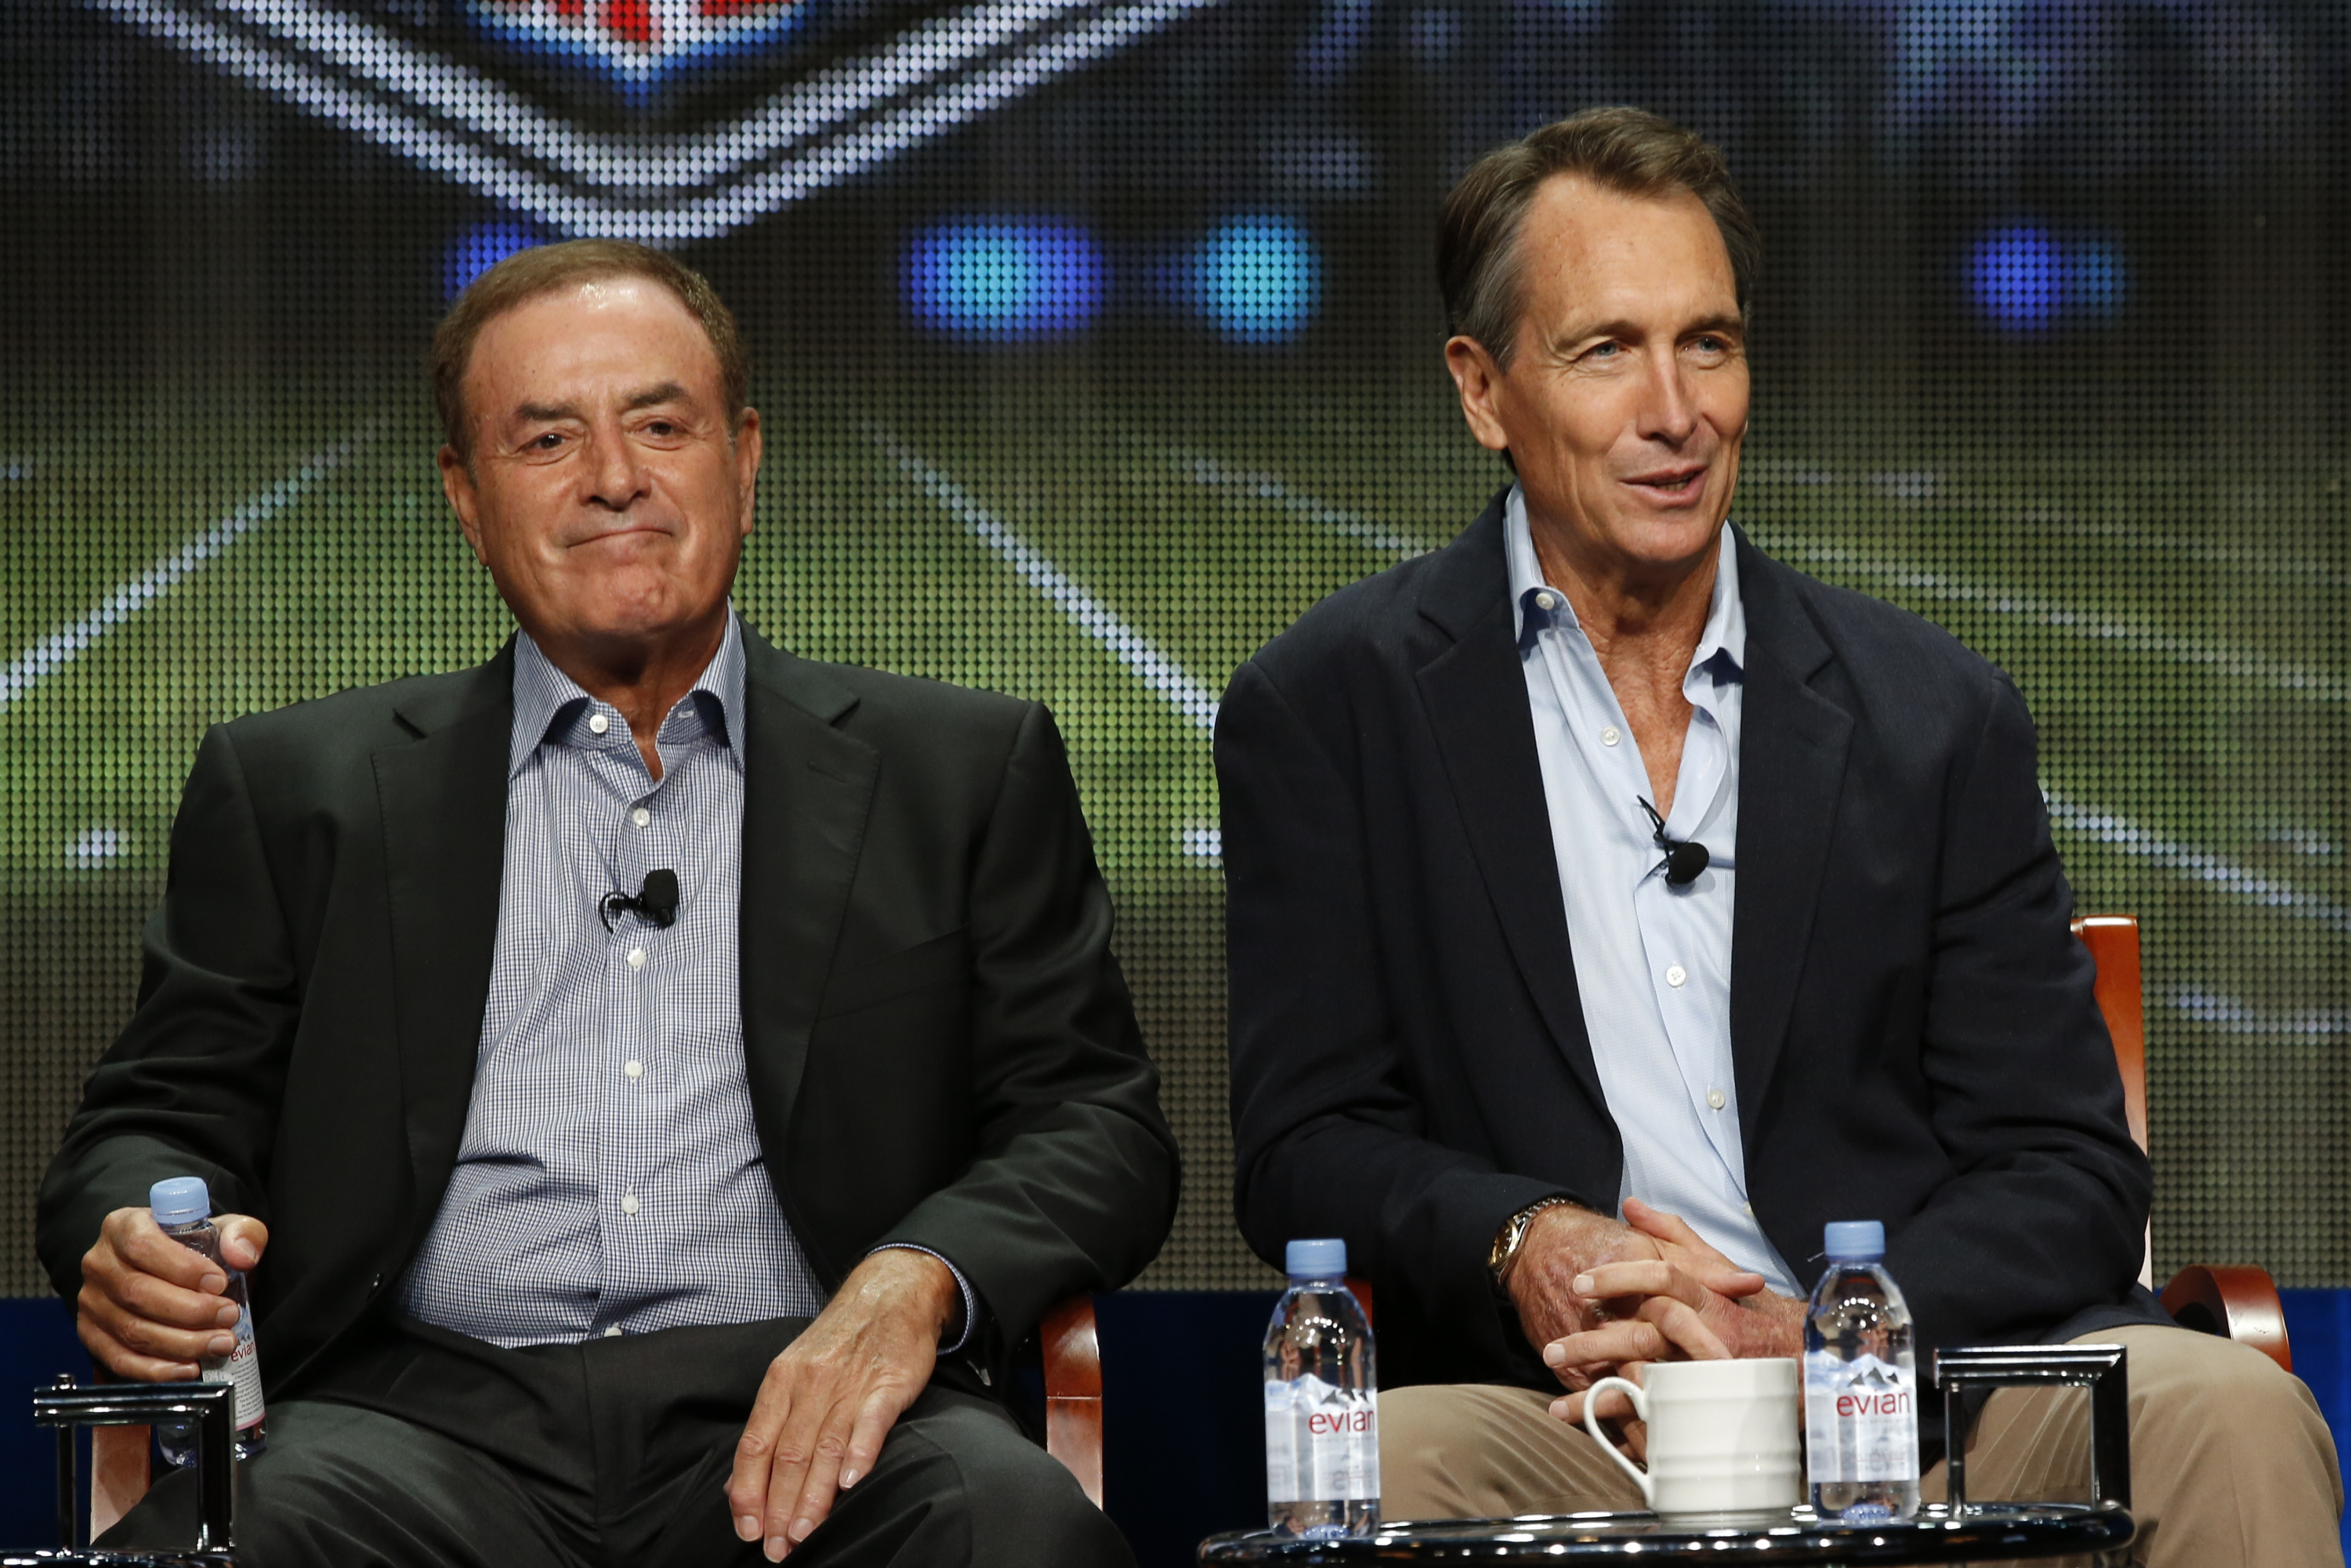 Even NBC's Al Michaels agrees that NFL games aren't the same without live fans in the building.